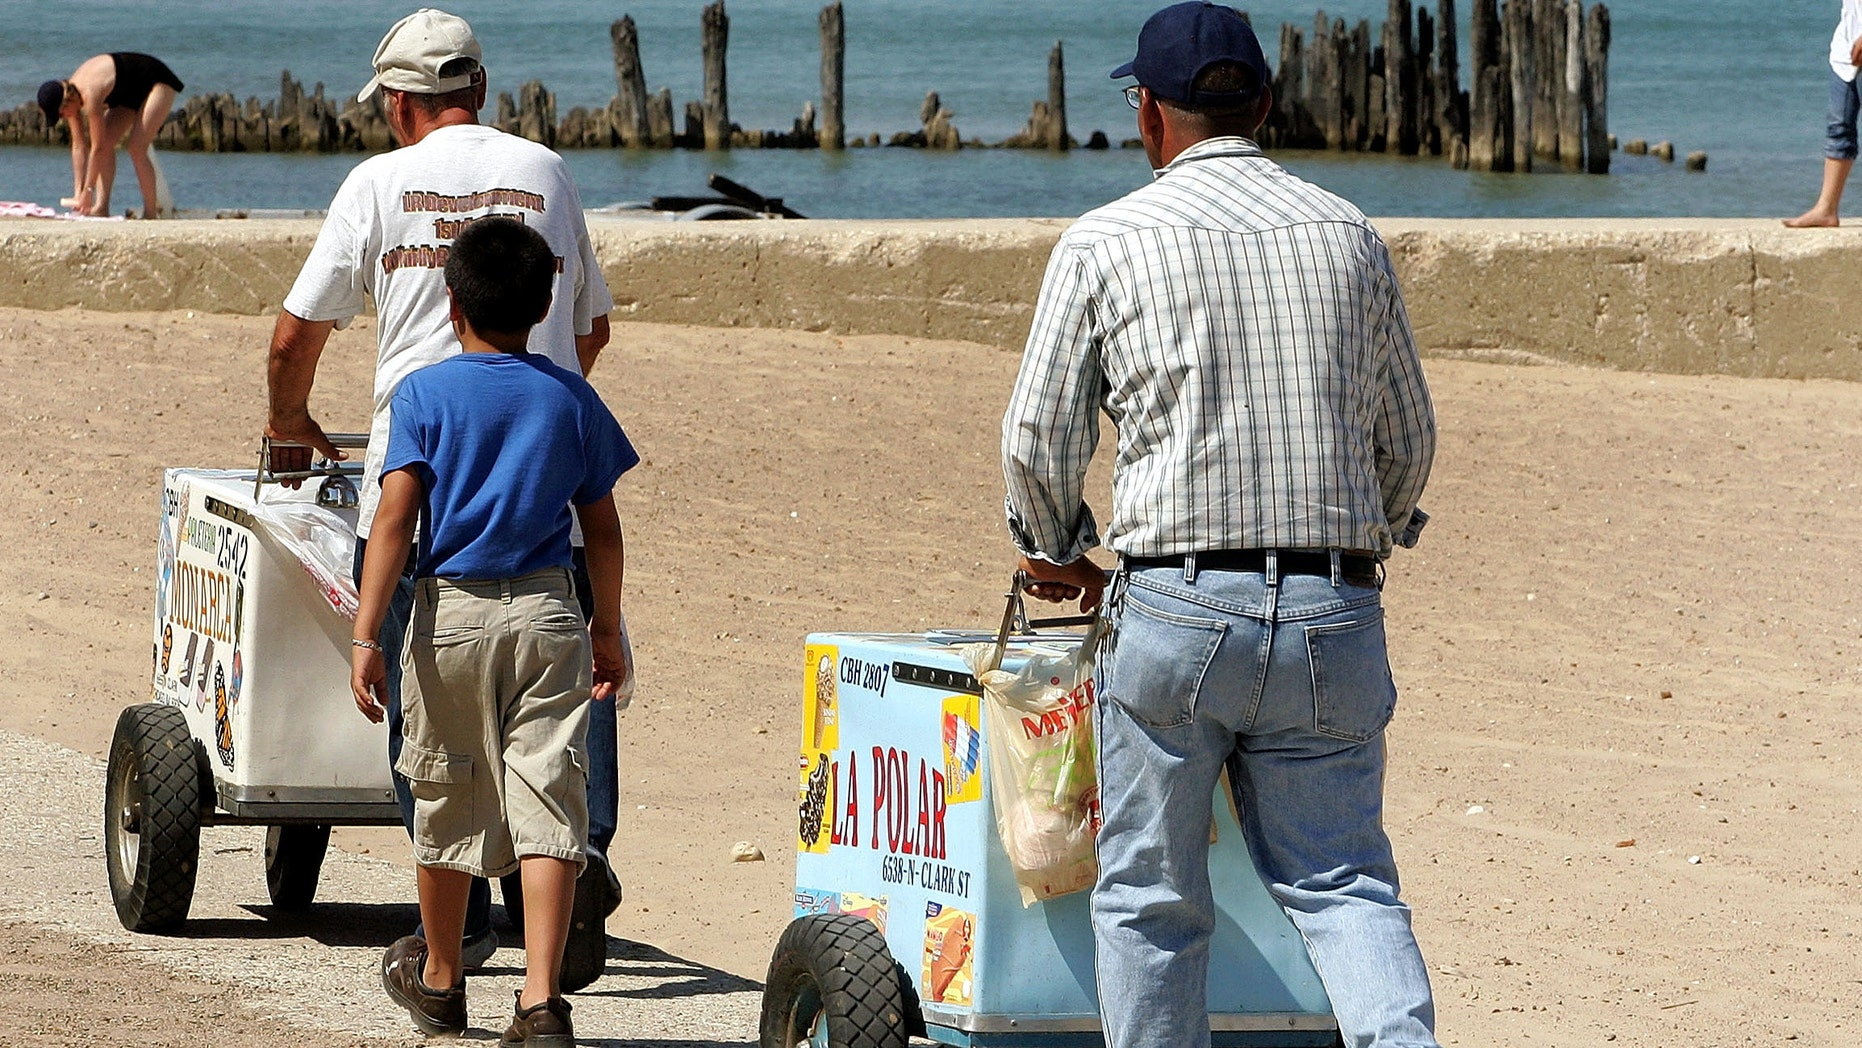 CHICAGO - JULY 24: Ice cream vendors push their carts on a beach along Lake Michigan July 24, 2005 in Chicago, Illinois. Extreme hot weather has hit several parts of the nation with highs over 100 degrees predicted in the Chicago area. (Photo by Tim Boyle/Getty Images)